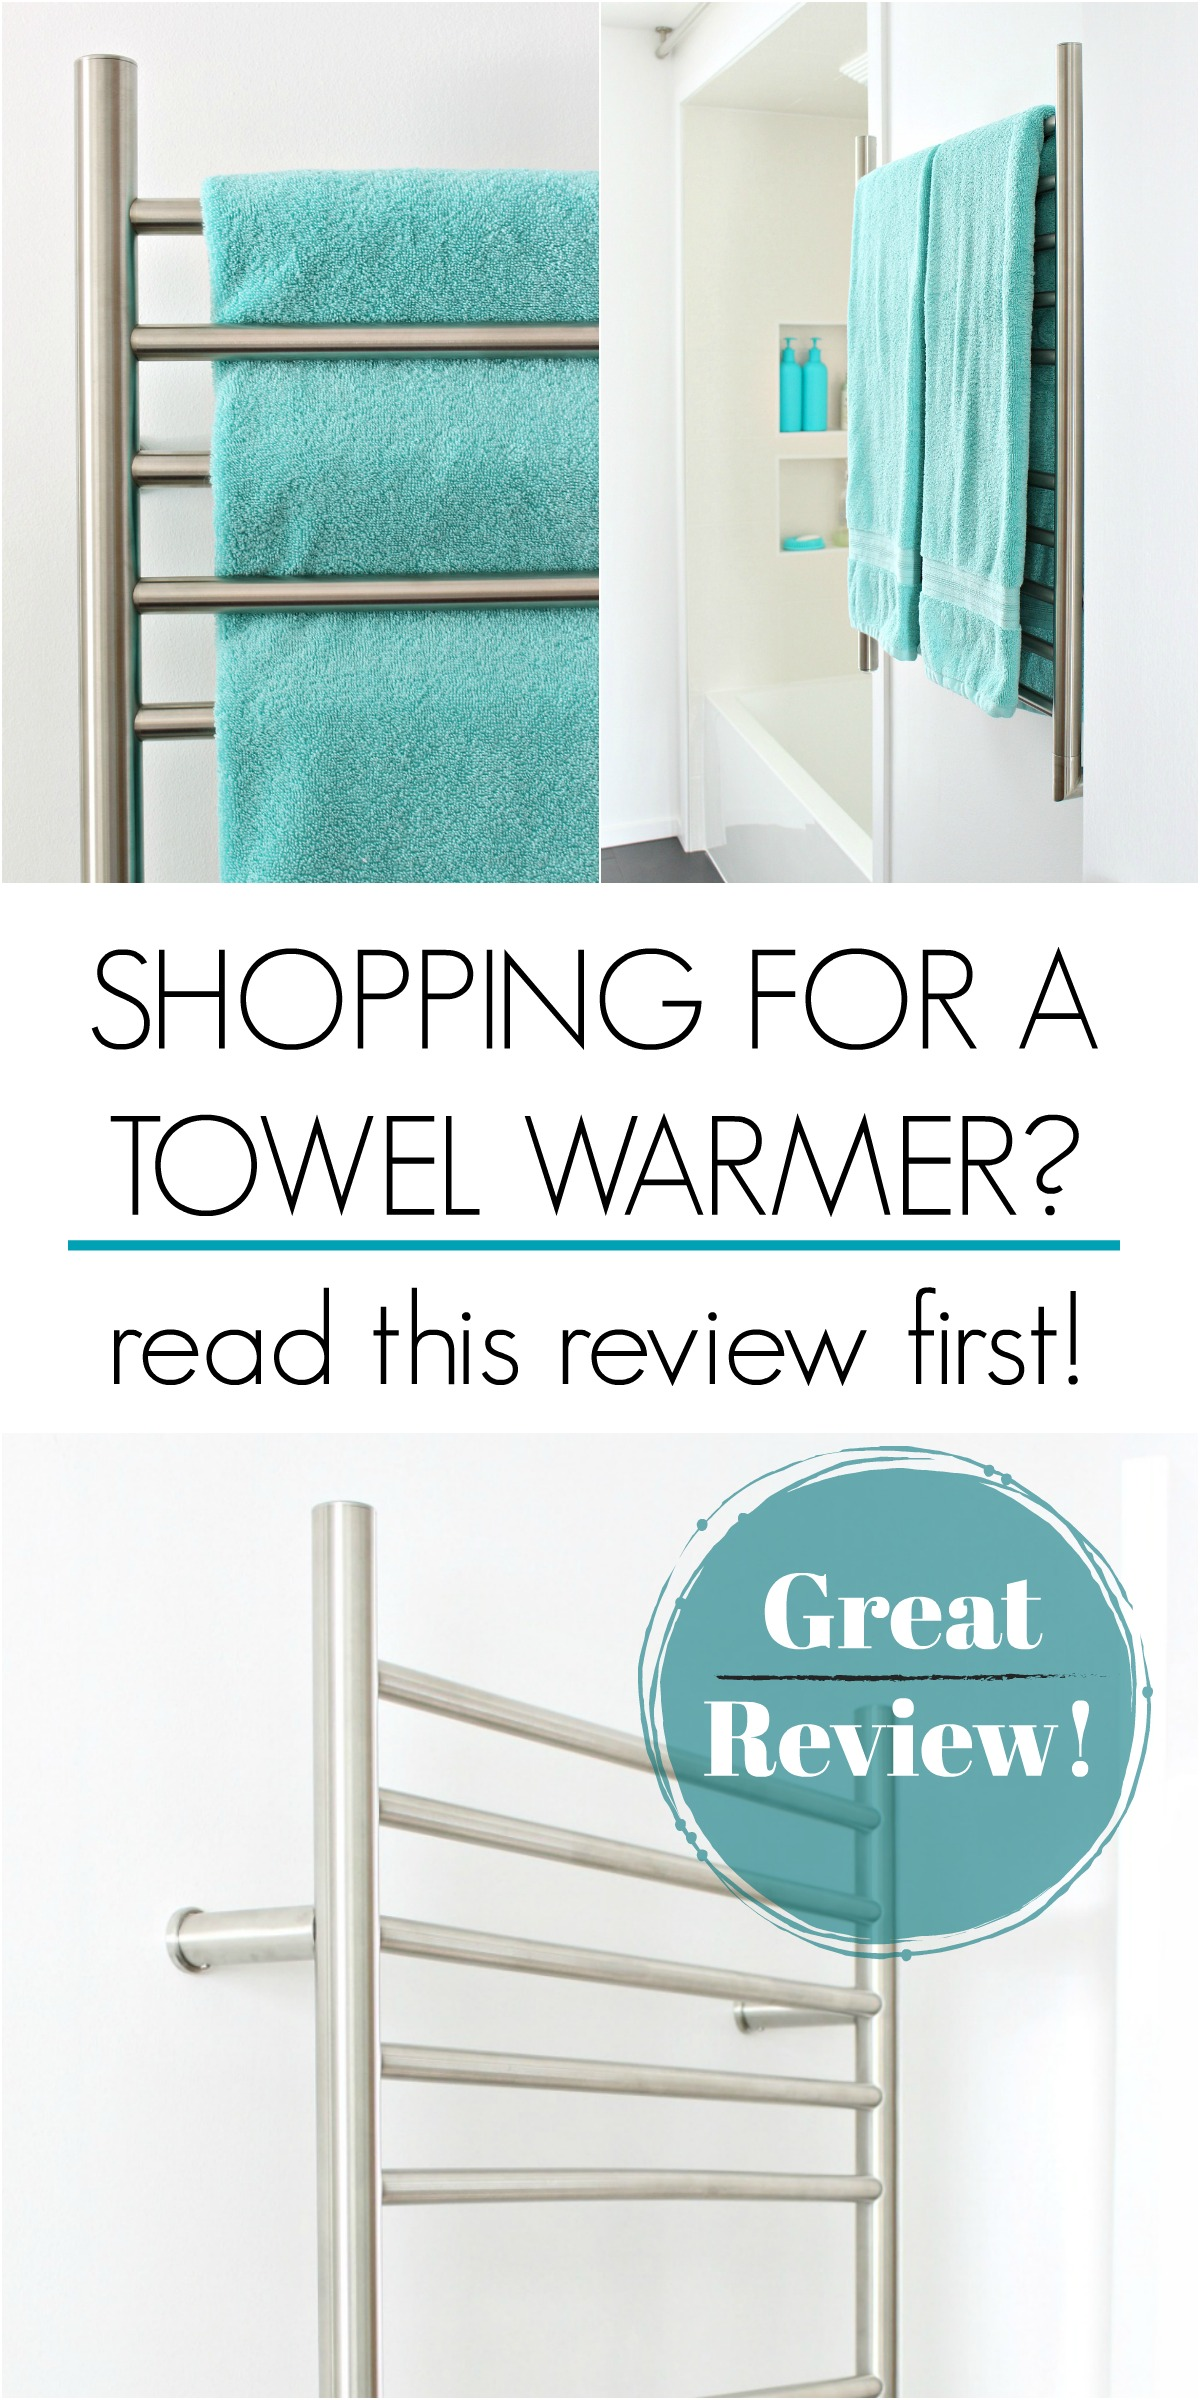 Shopping for Towel Warmer? Read This Review First! LOTS of Great Info and Things to Think About. GREAT Way to Add Luxury and Convenience to Any Bathroom. Read Our Experience with DIY Installation. #towelwarmer #bathroomideas #bathroommusthaves